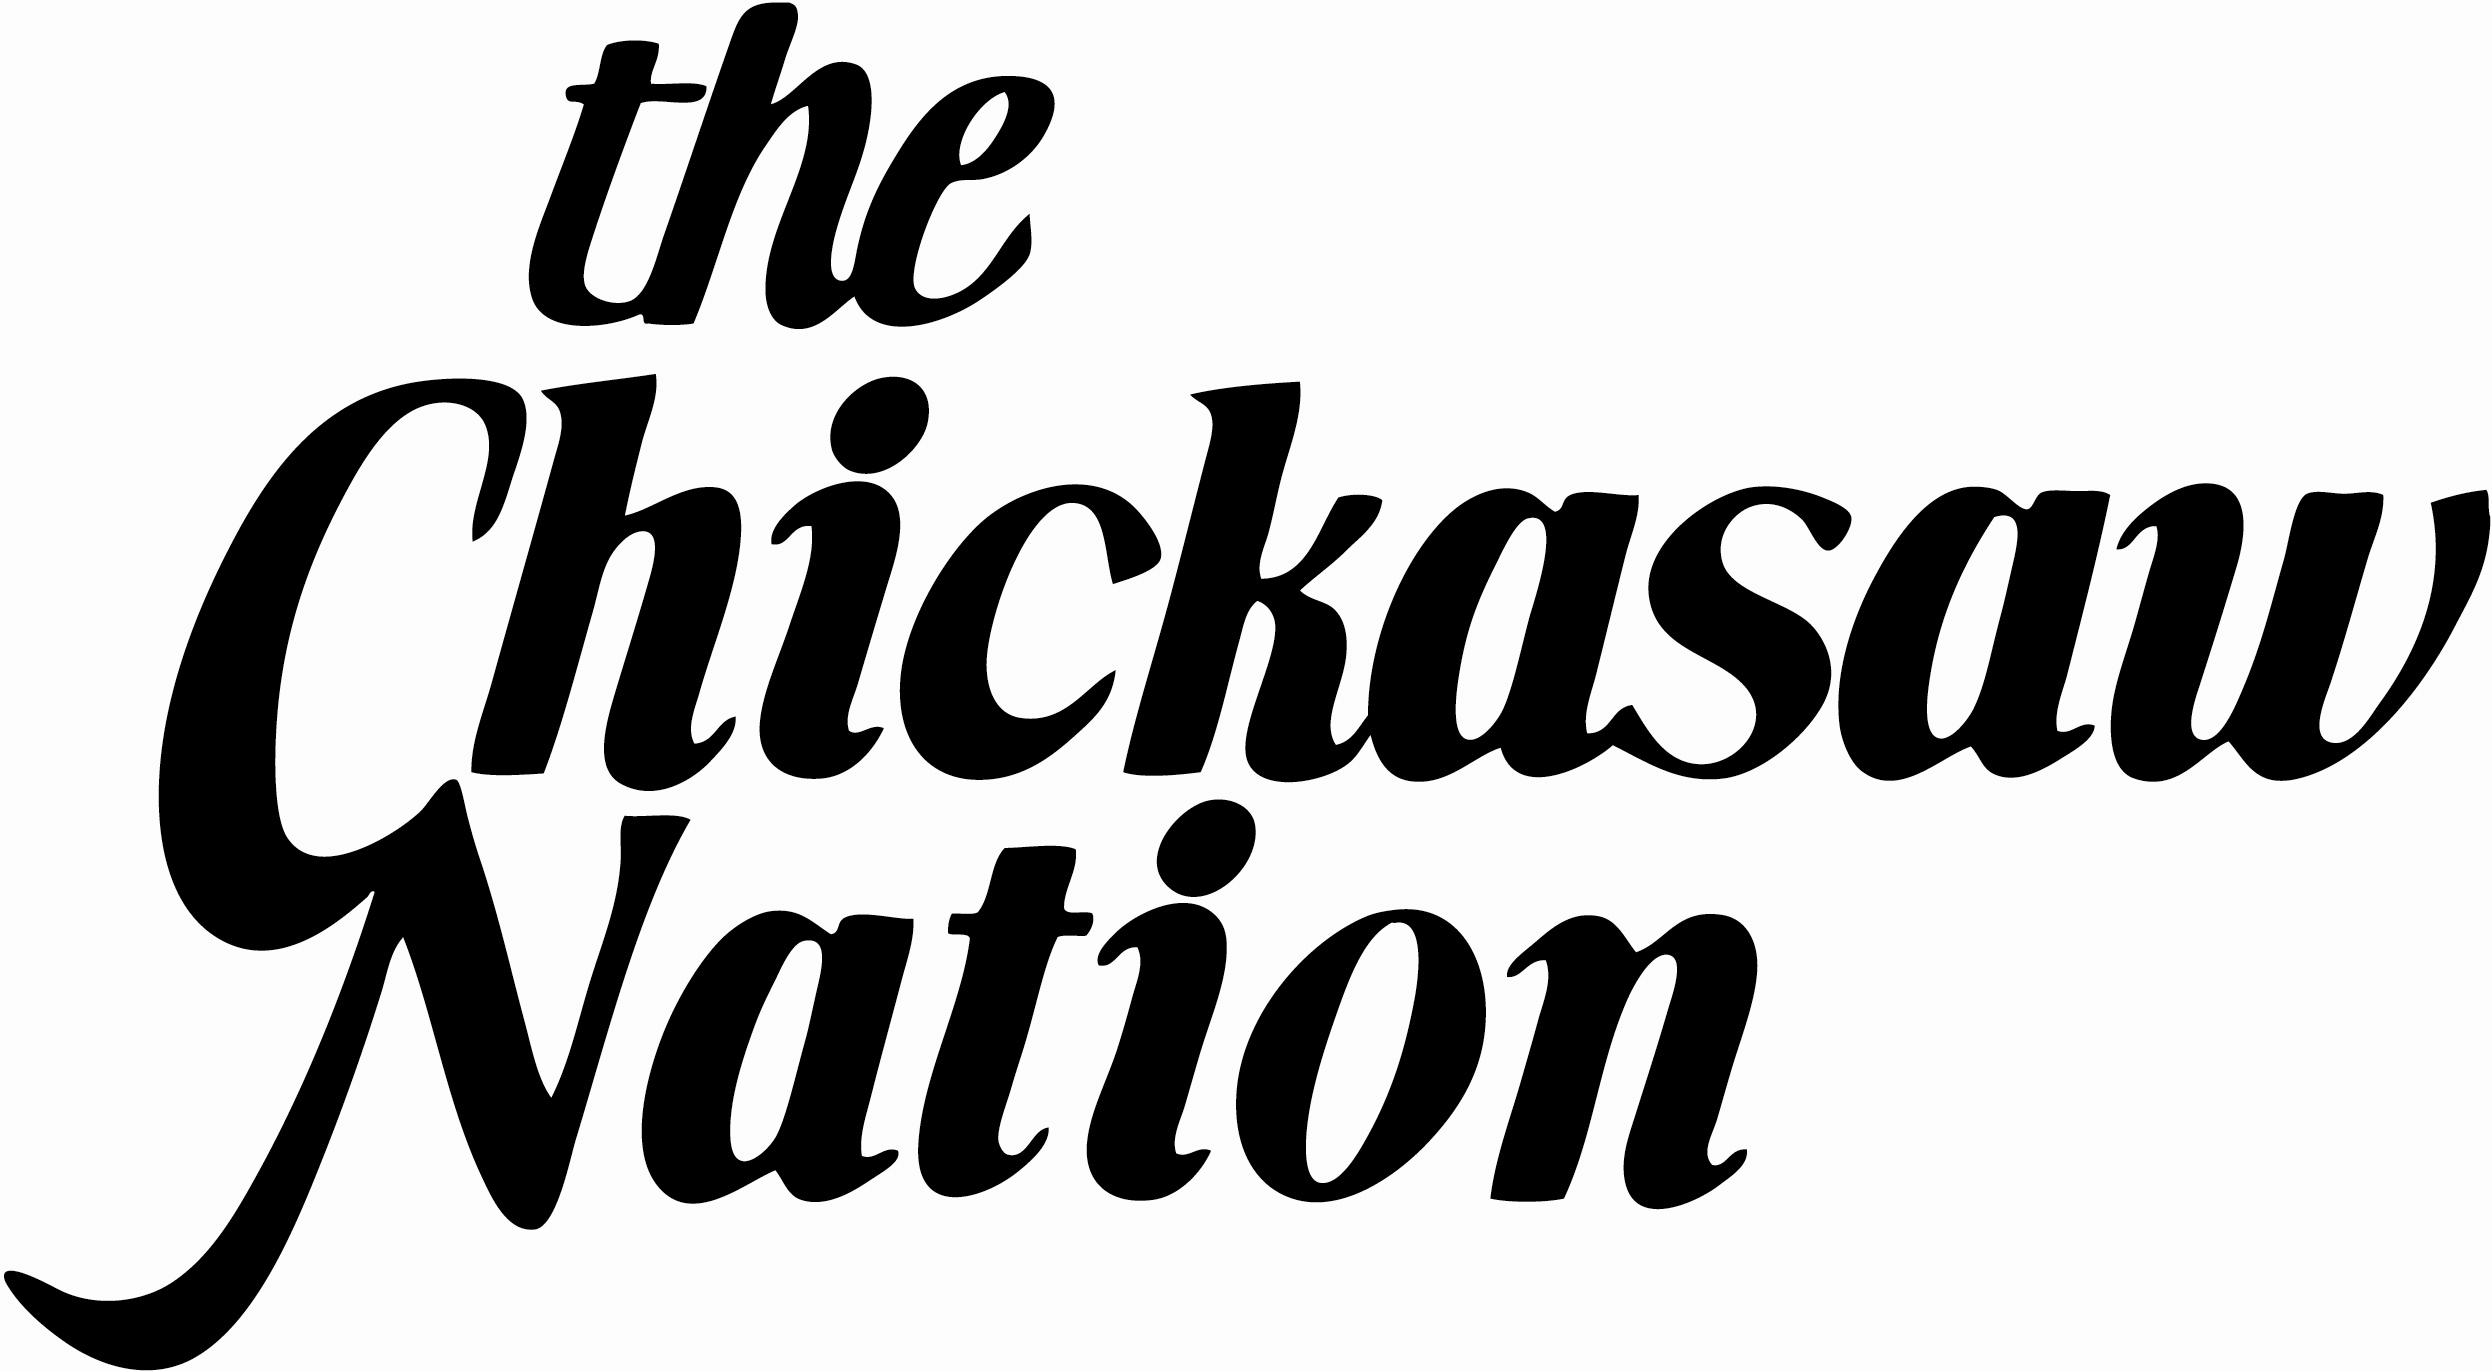 Chickasaw Nation Logo